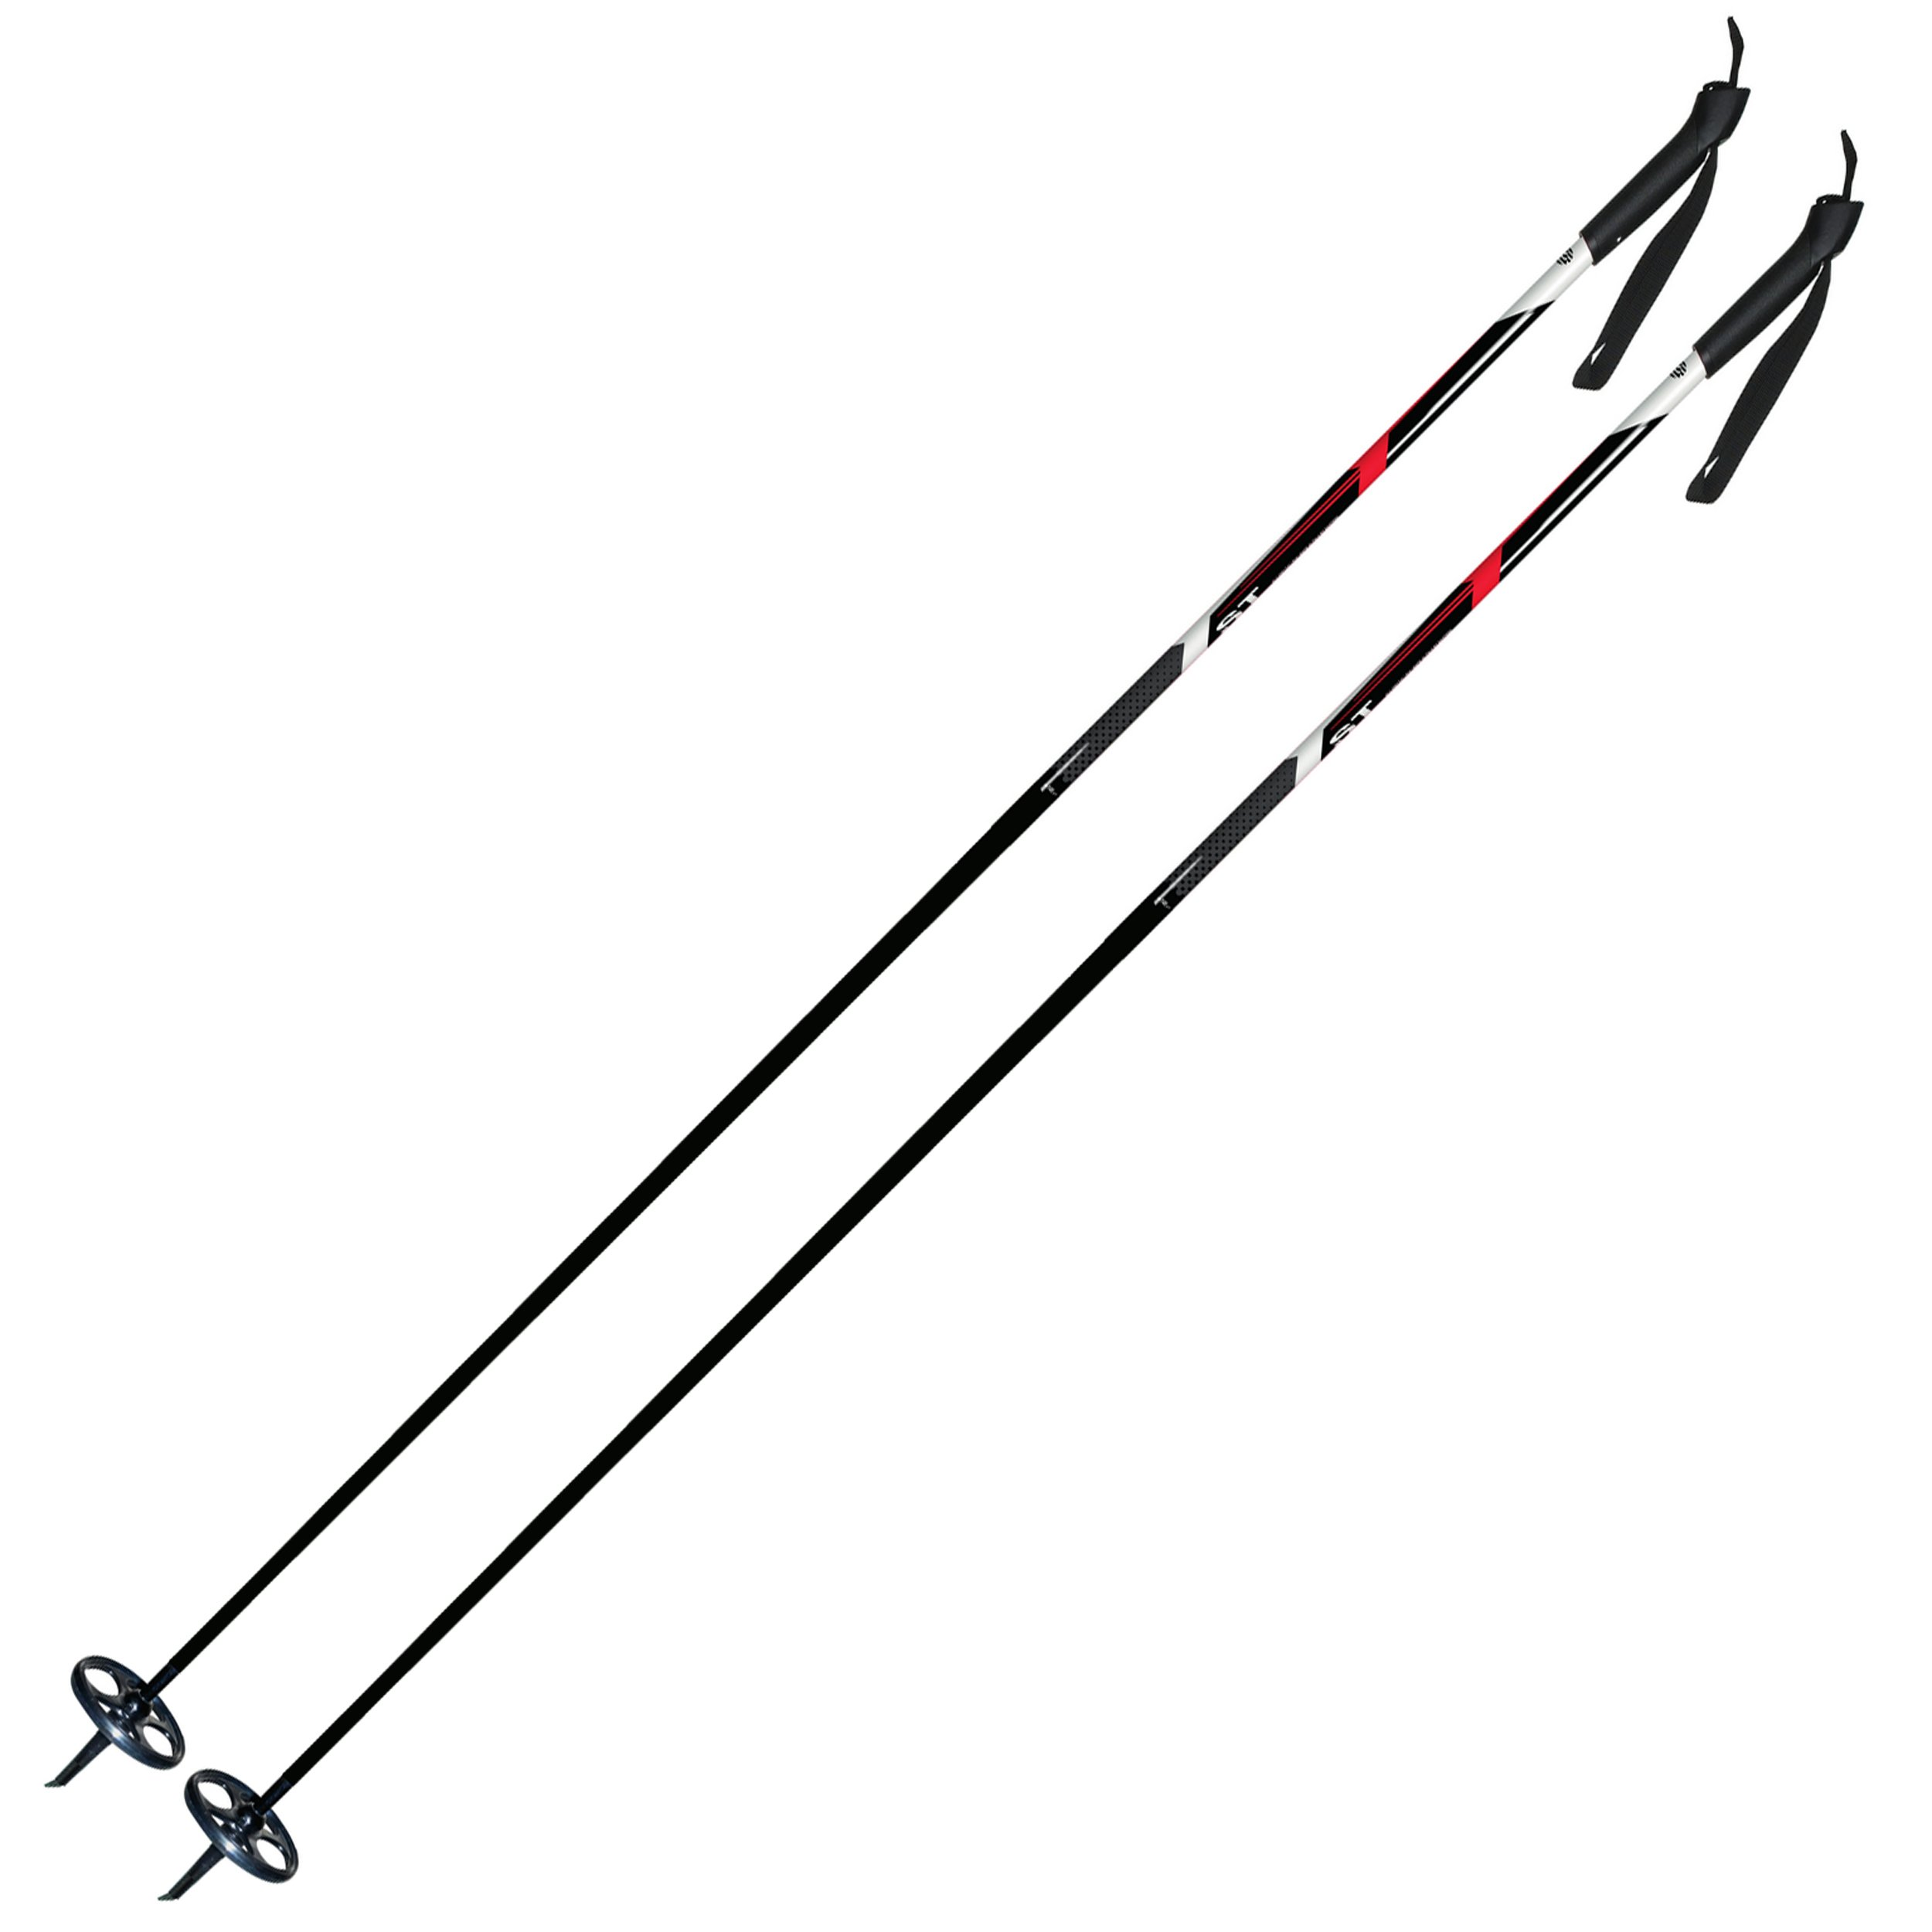 Alpina Sports ASC-ST Snowflake Cross-Country Nordic Ski Poles with Round Baskets, 155cm, Pr. by Alpina